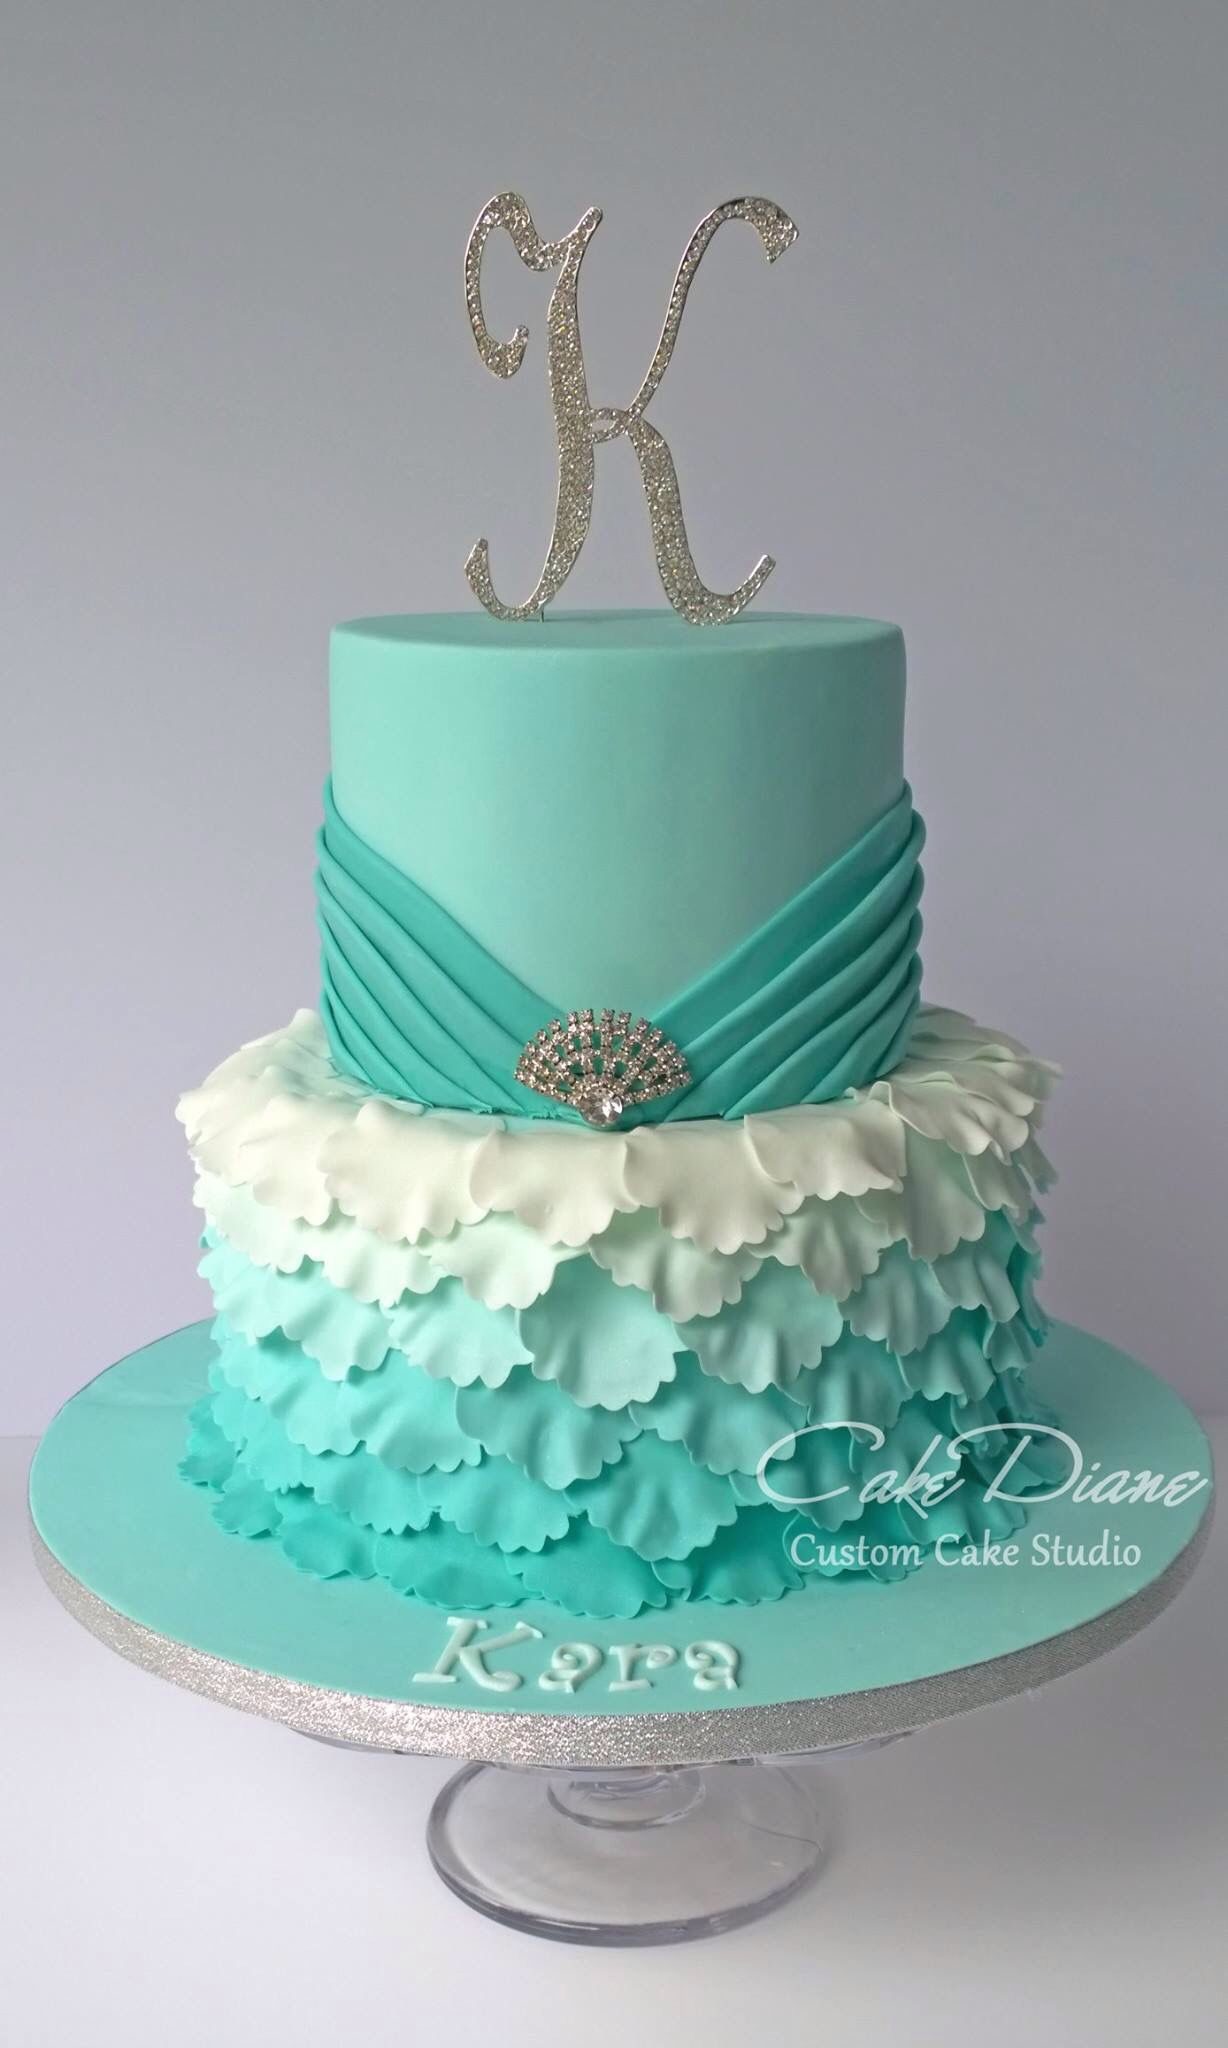 Astounding Jade Petal Cake Sweet 16 Birthday Cake 16Th Birthday Cake For Personalised Birthday Cards Paralily Jamesorg